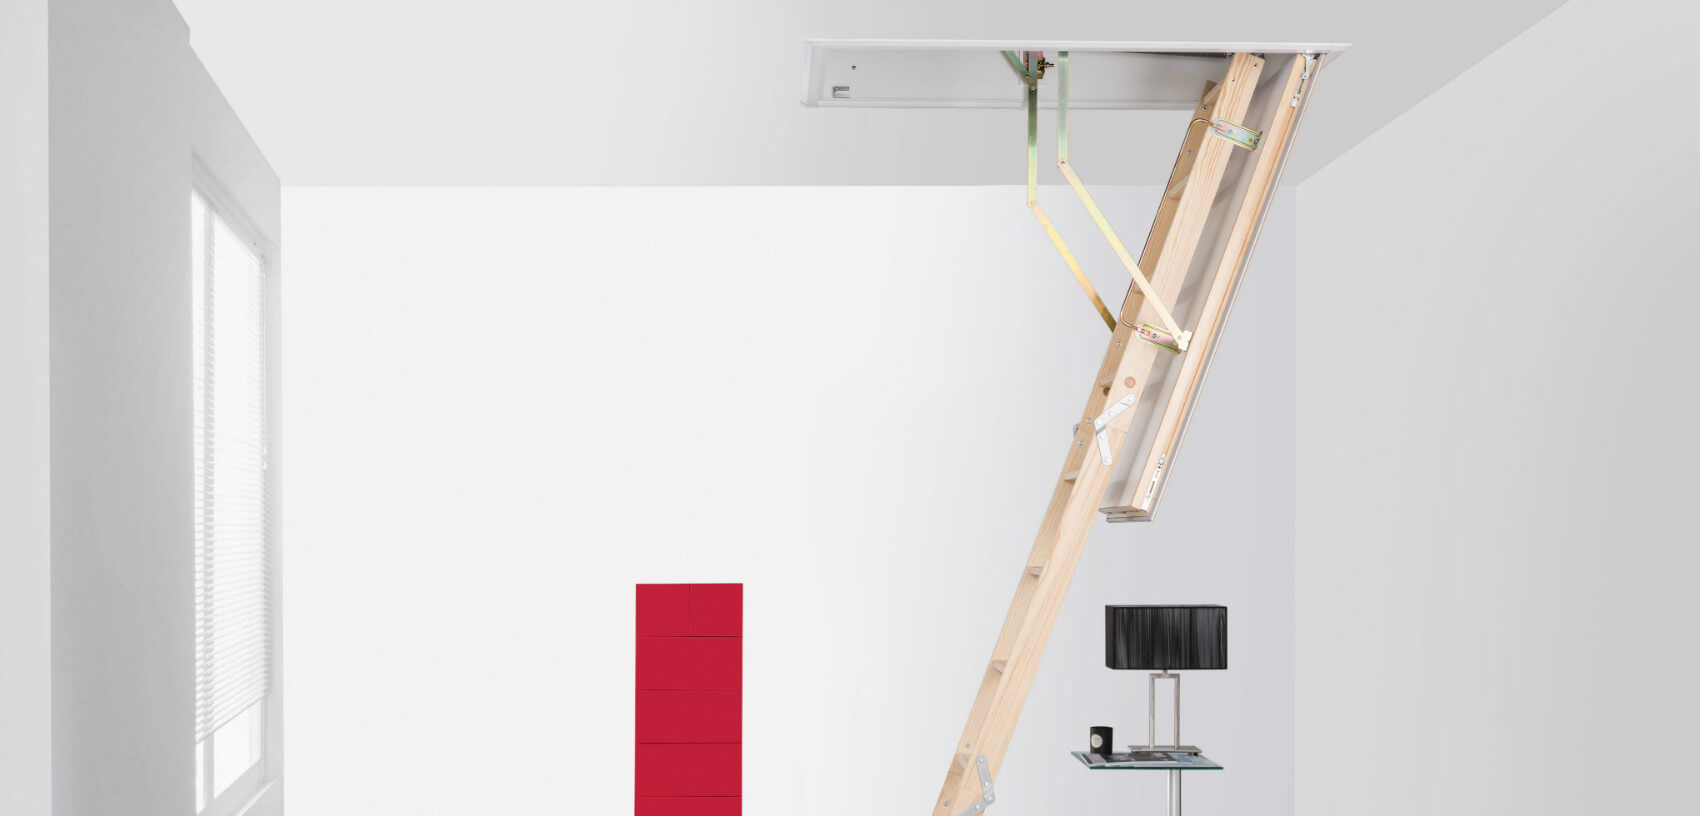 Loft hatch and ladder. The Quadro is made-to-measure with an insulated loft hatch.